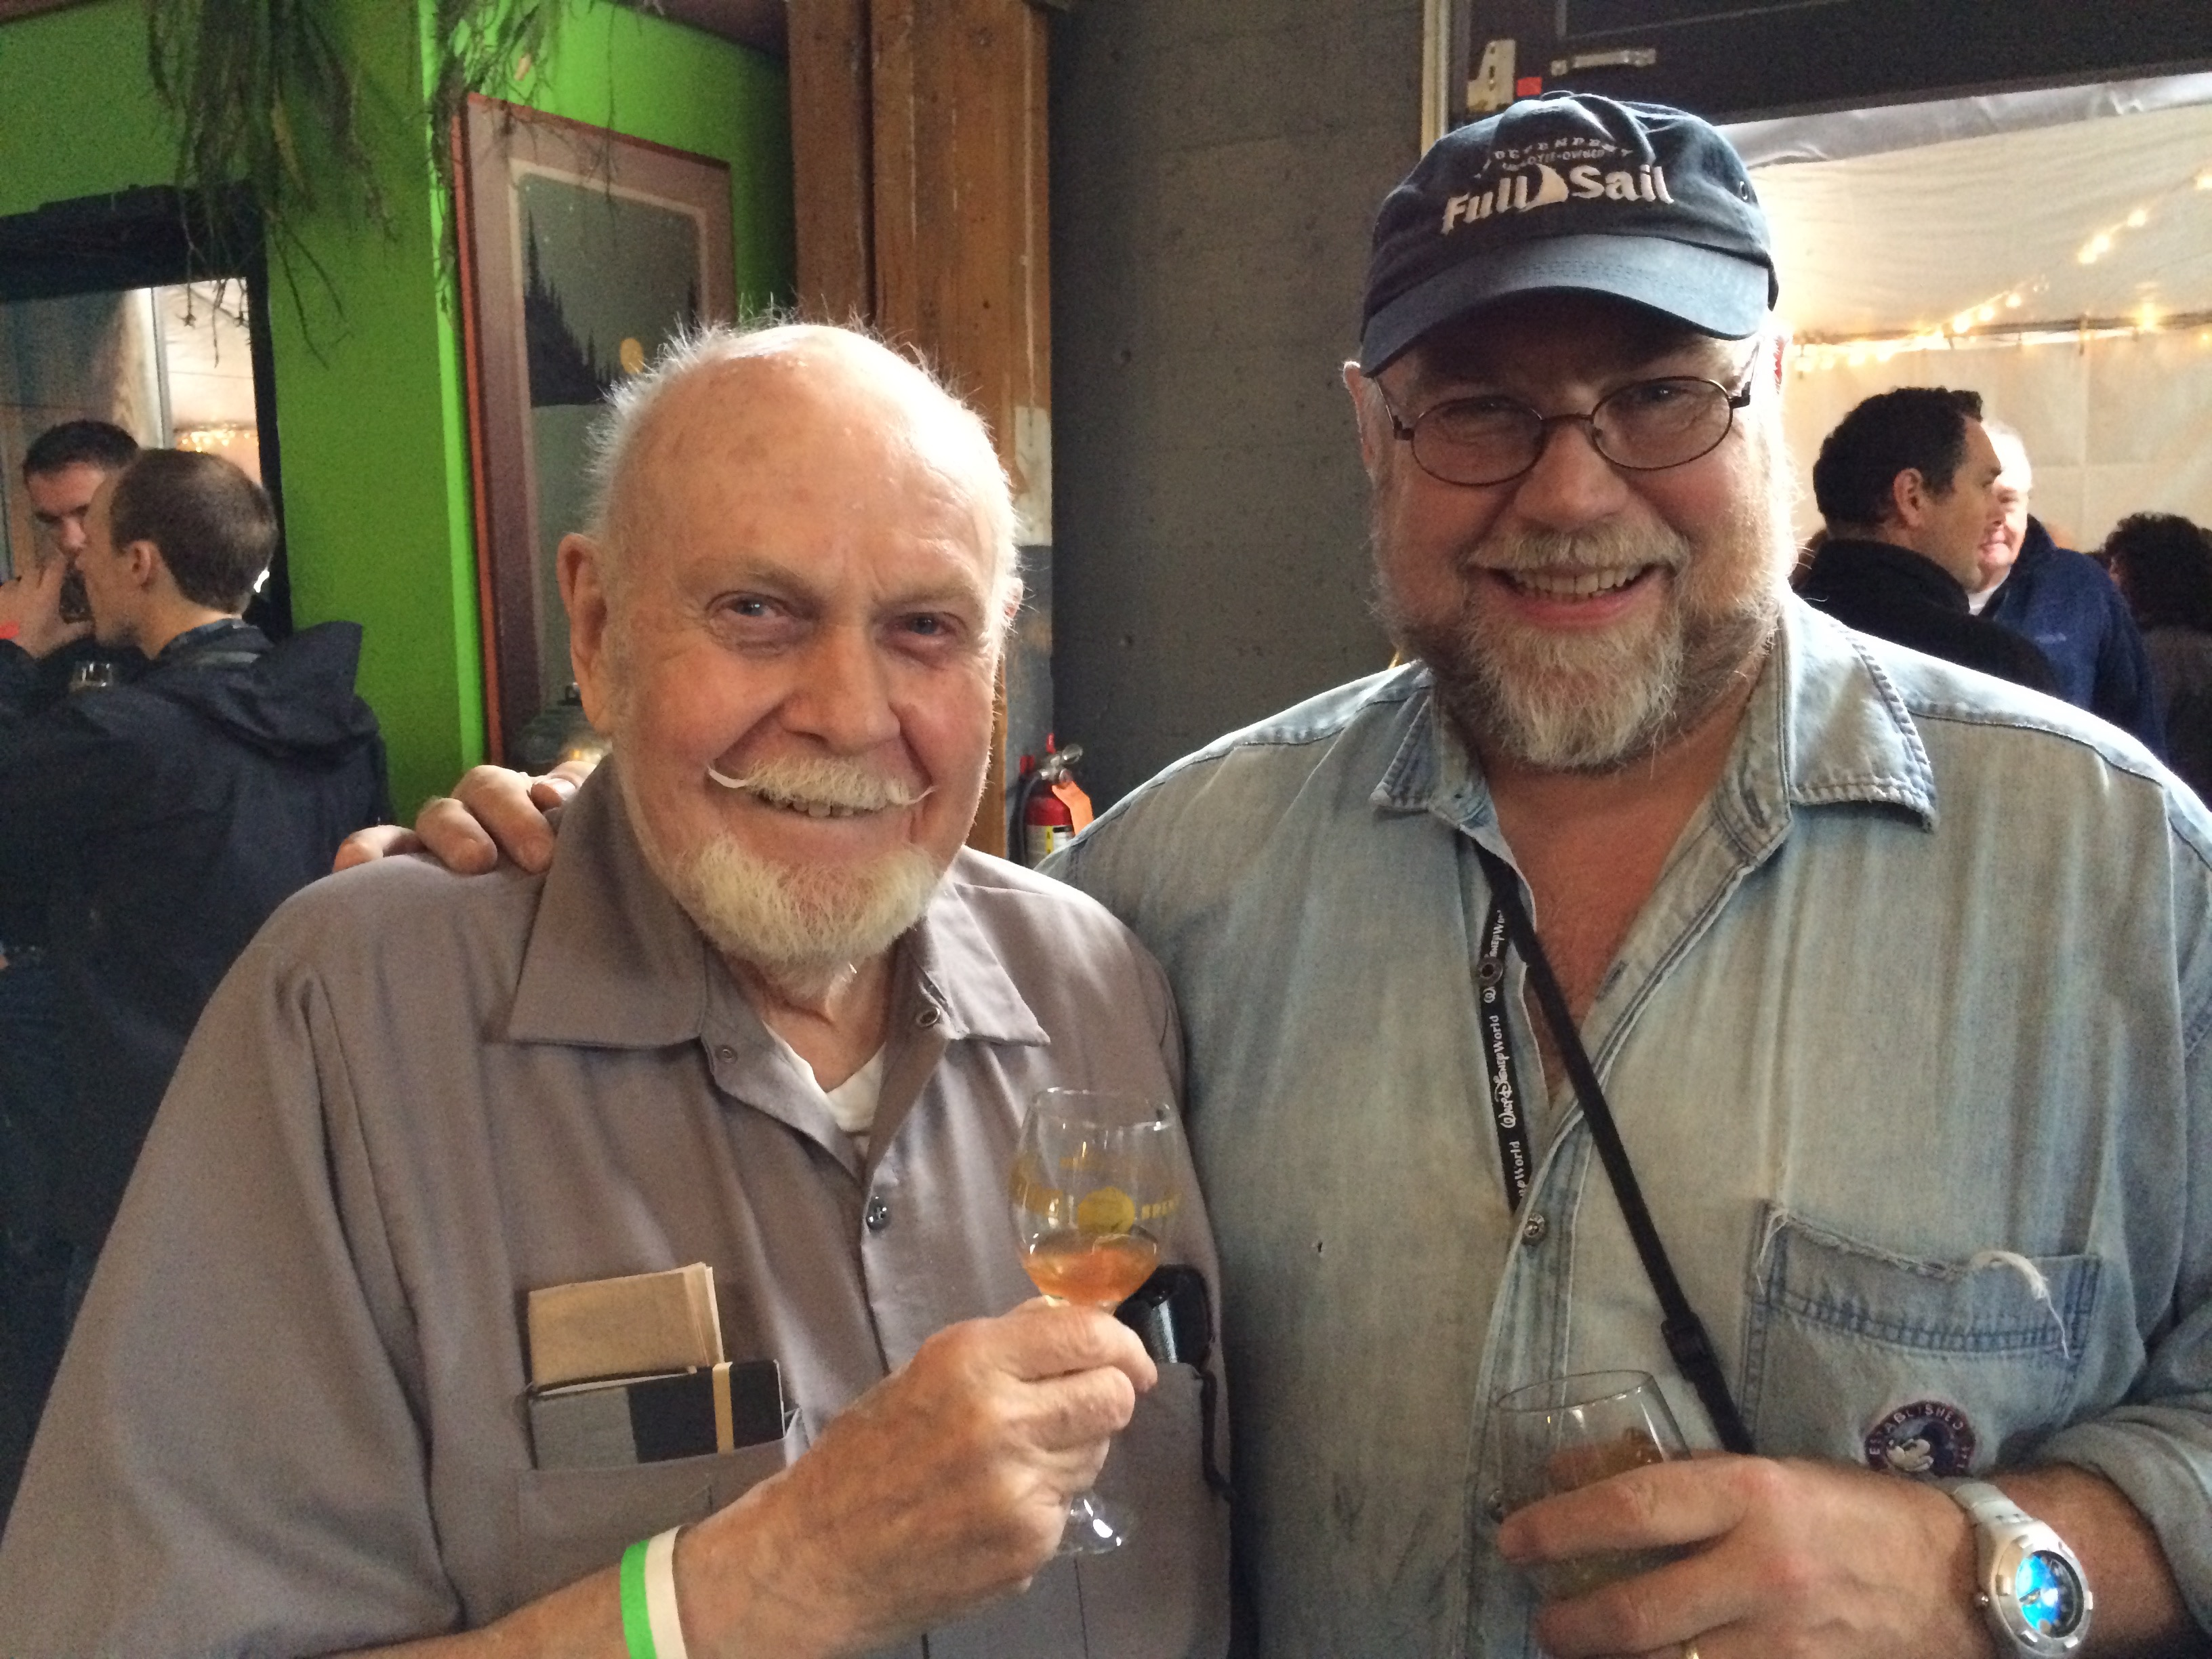 One of our favorite photos, Fred Eckhardt and John Foyston at 2014 FredFest.